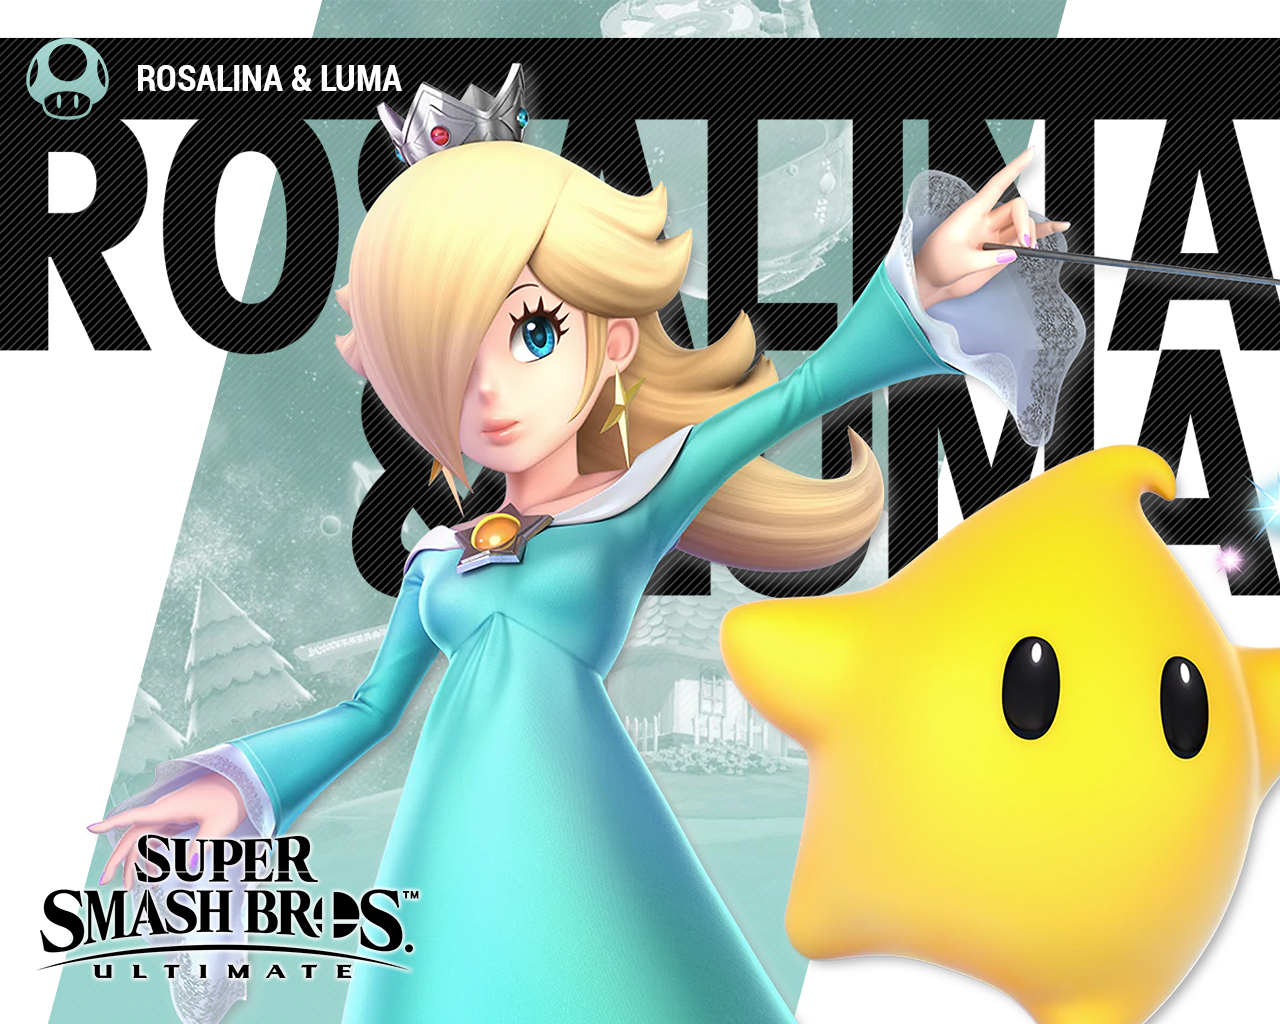 Super Smash Bros Ultimate Rosalina And Luma Wallpapers Cat With Monocle